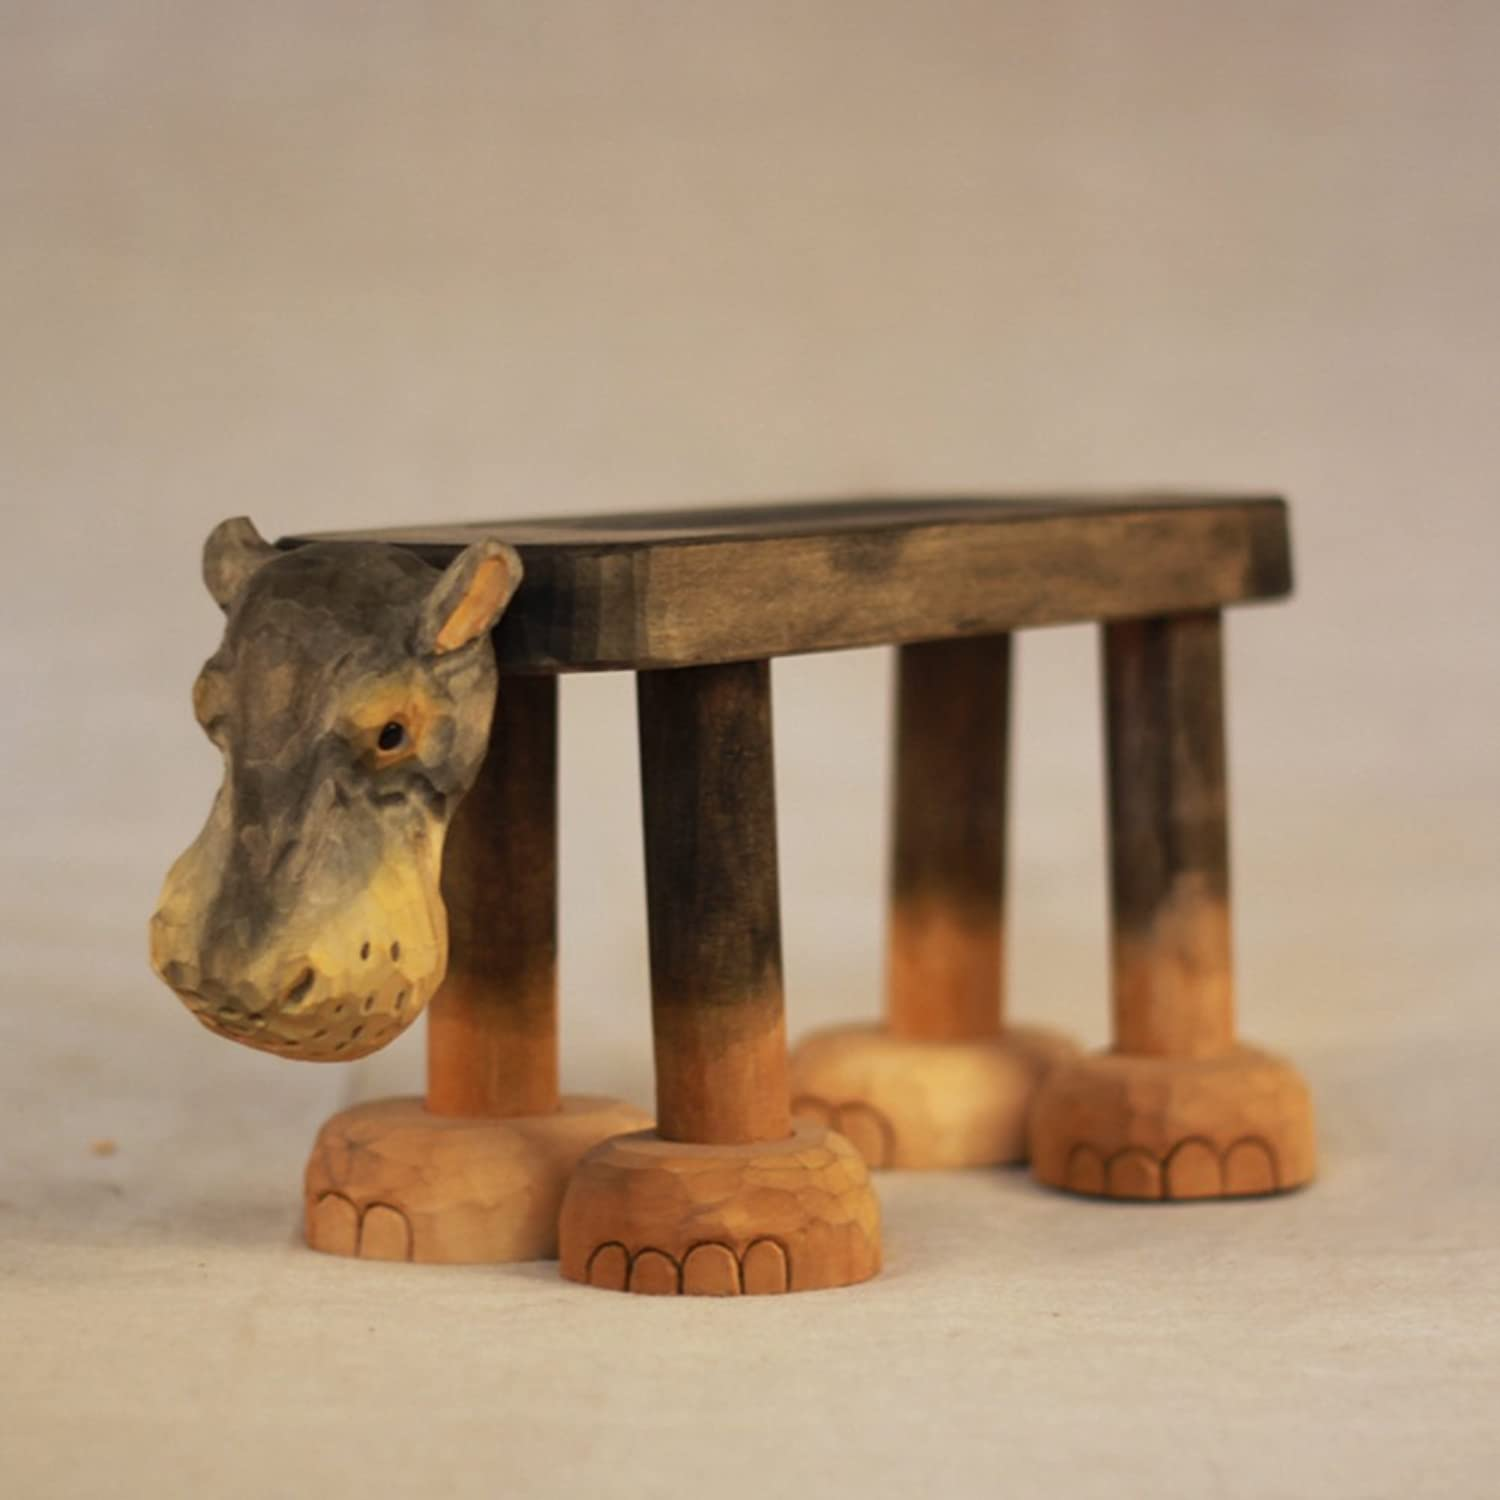 Footstool Animal Small Bench Hand Carving Gift Solid Wood Bench Home Decoration Ornaments-B